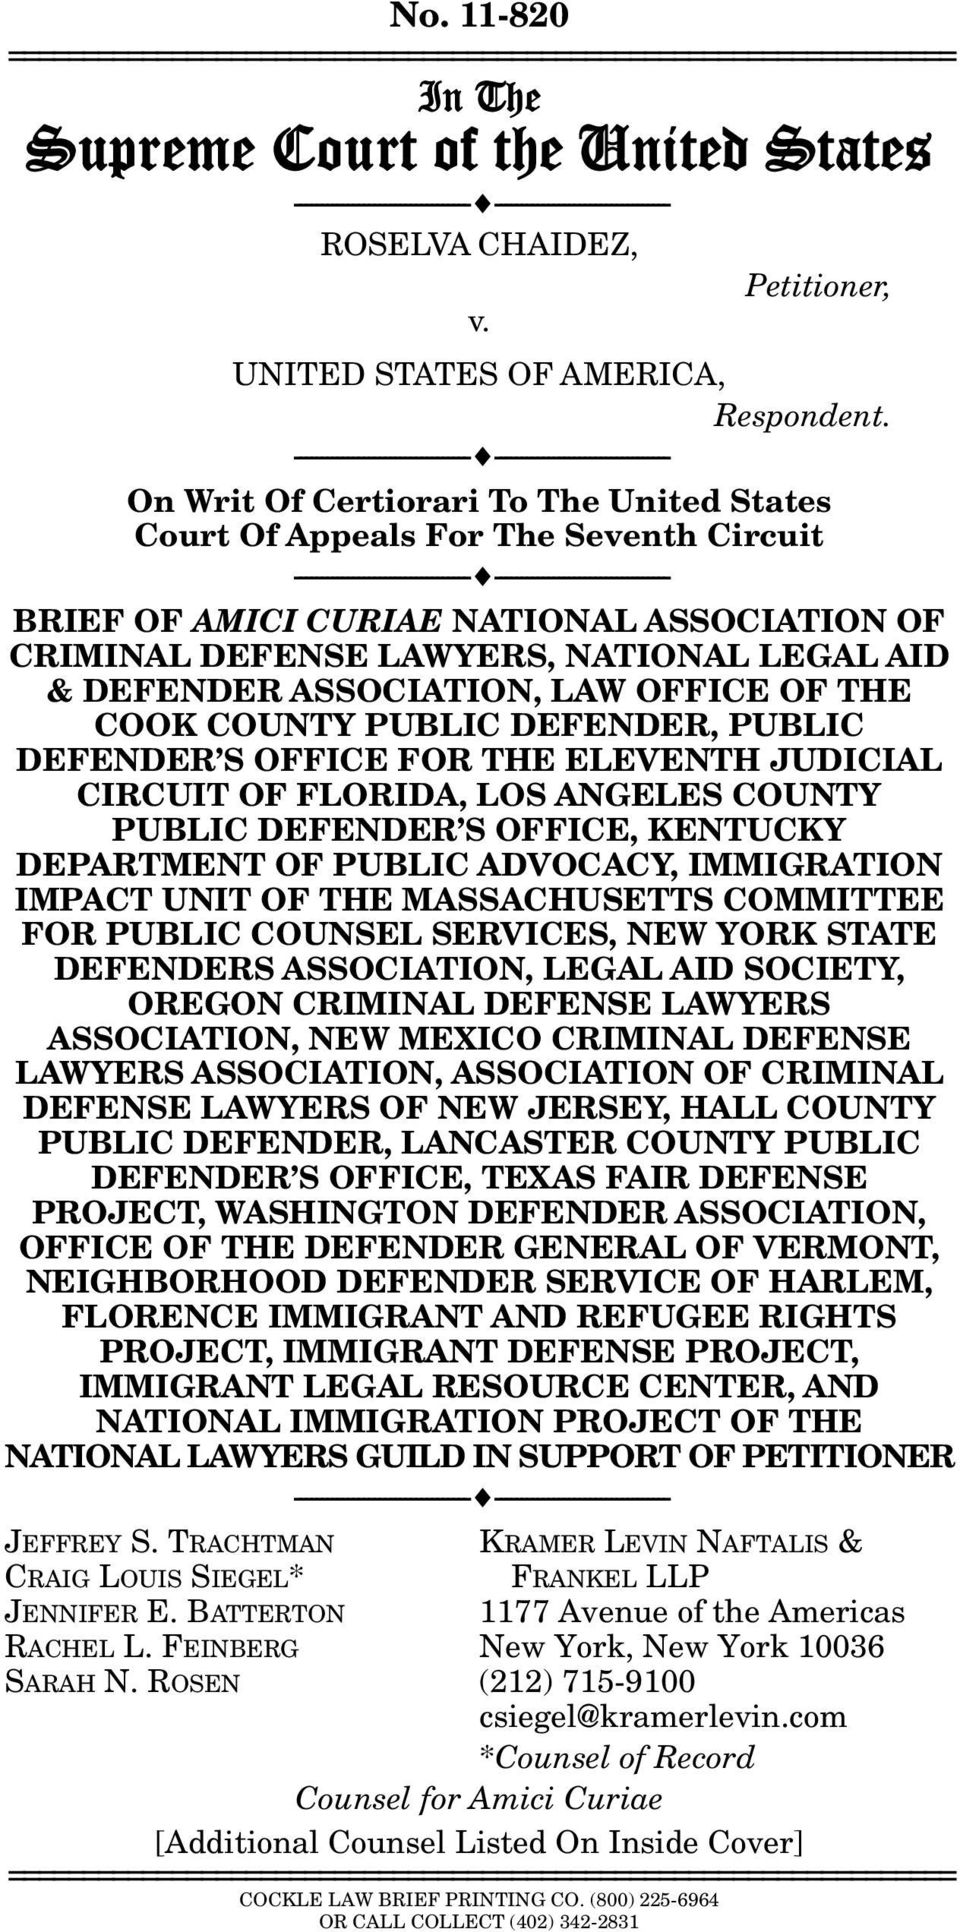 --------------------------------- --------------------------------- On Writ Of Certiorari To The United States Court Of Appeals For The Seventh Circuit ---------------------------------